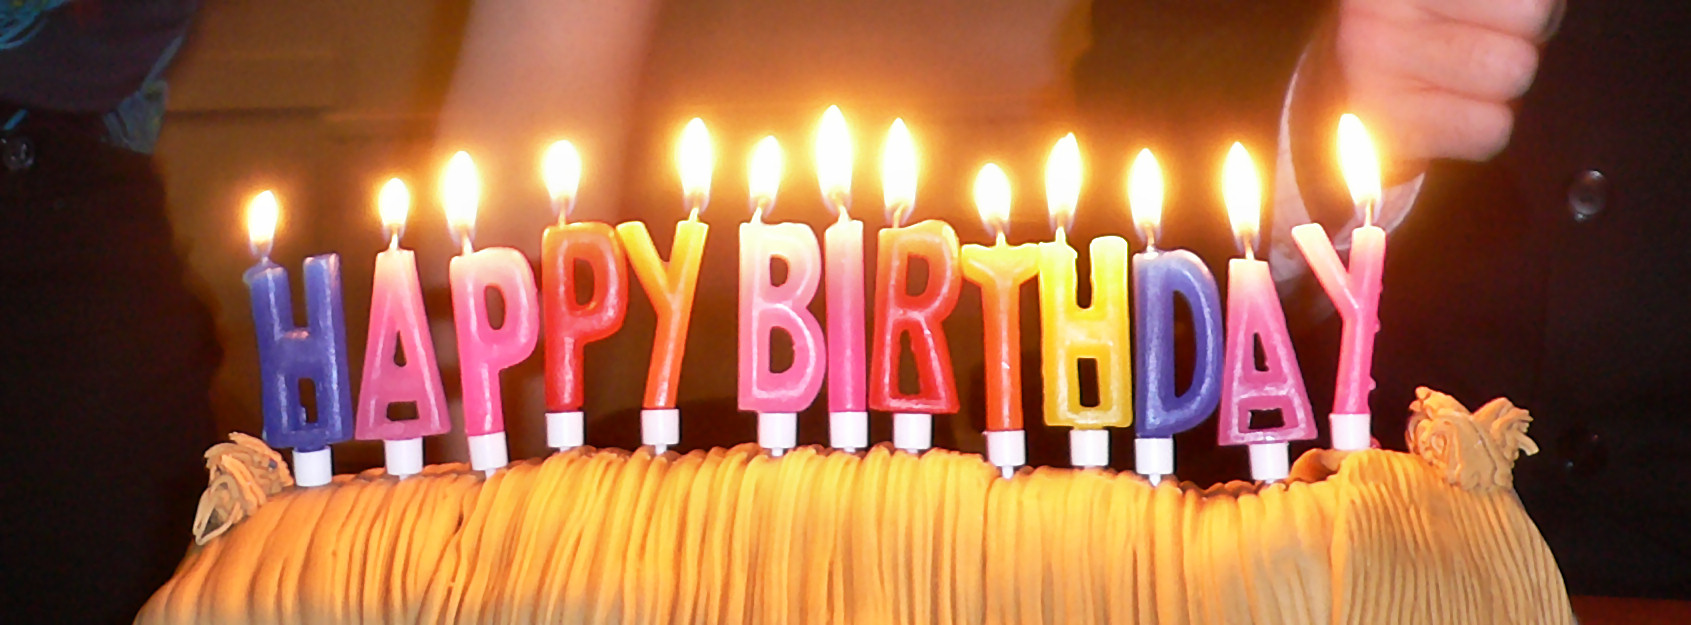 http://upload.wikimedia.org/wikipedia/commons/d/dd/Birthday_candles.jpg